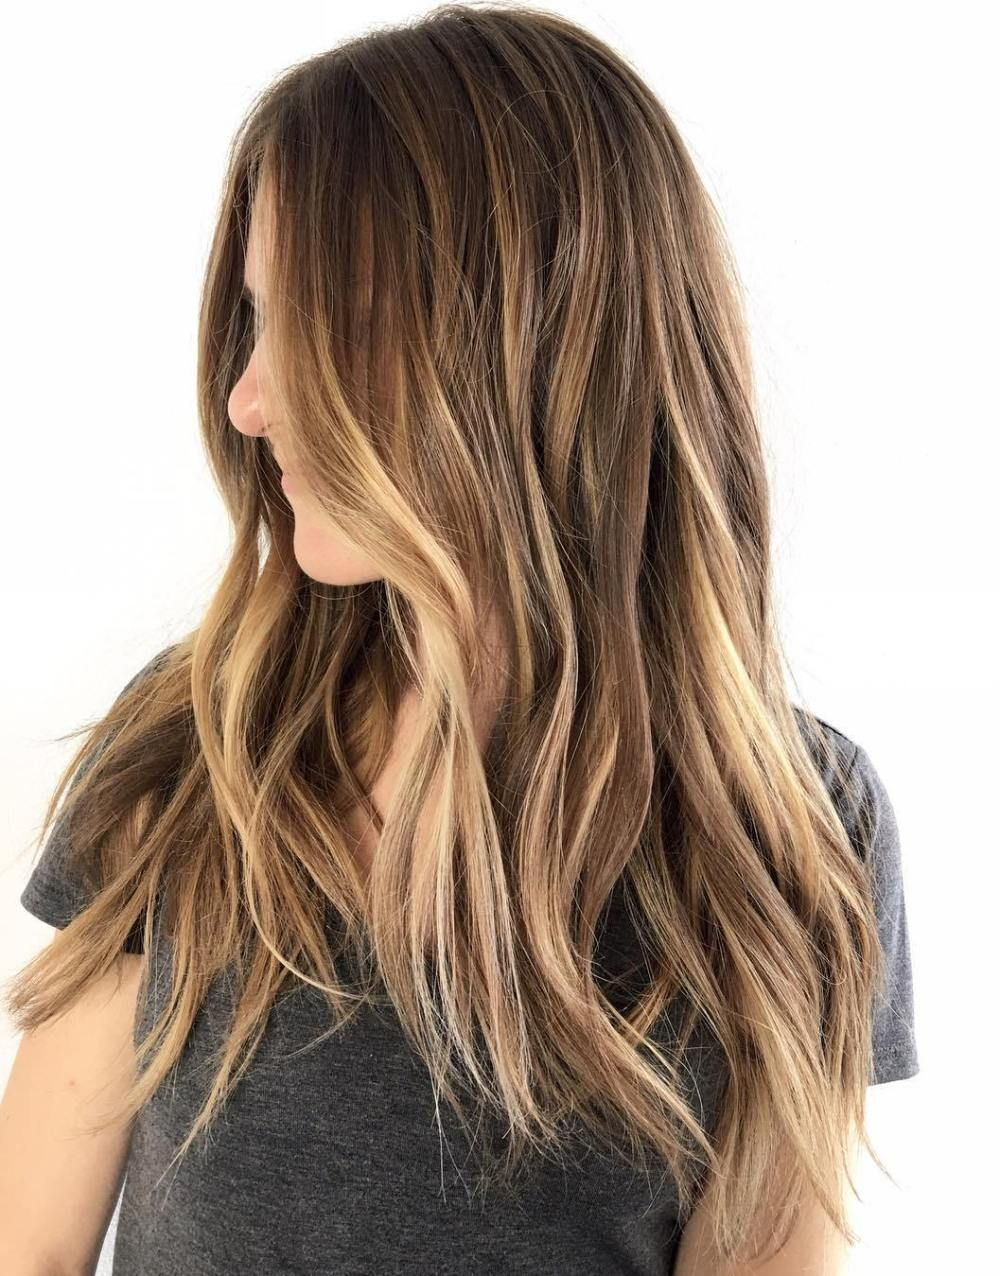 Light Brown Hair With Colored Tips   www.pixshark.com ...